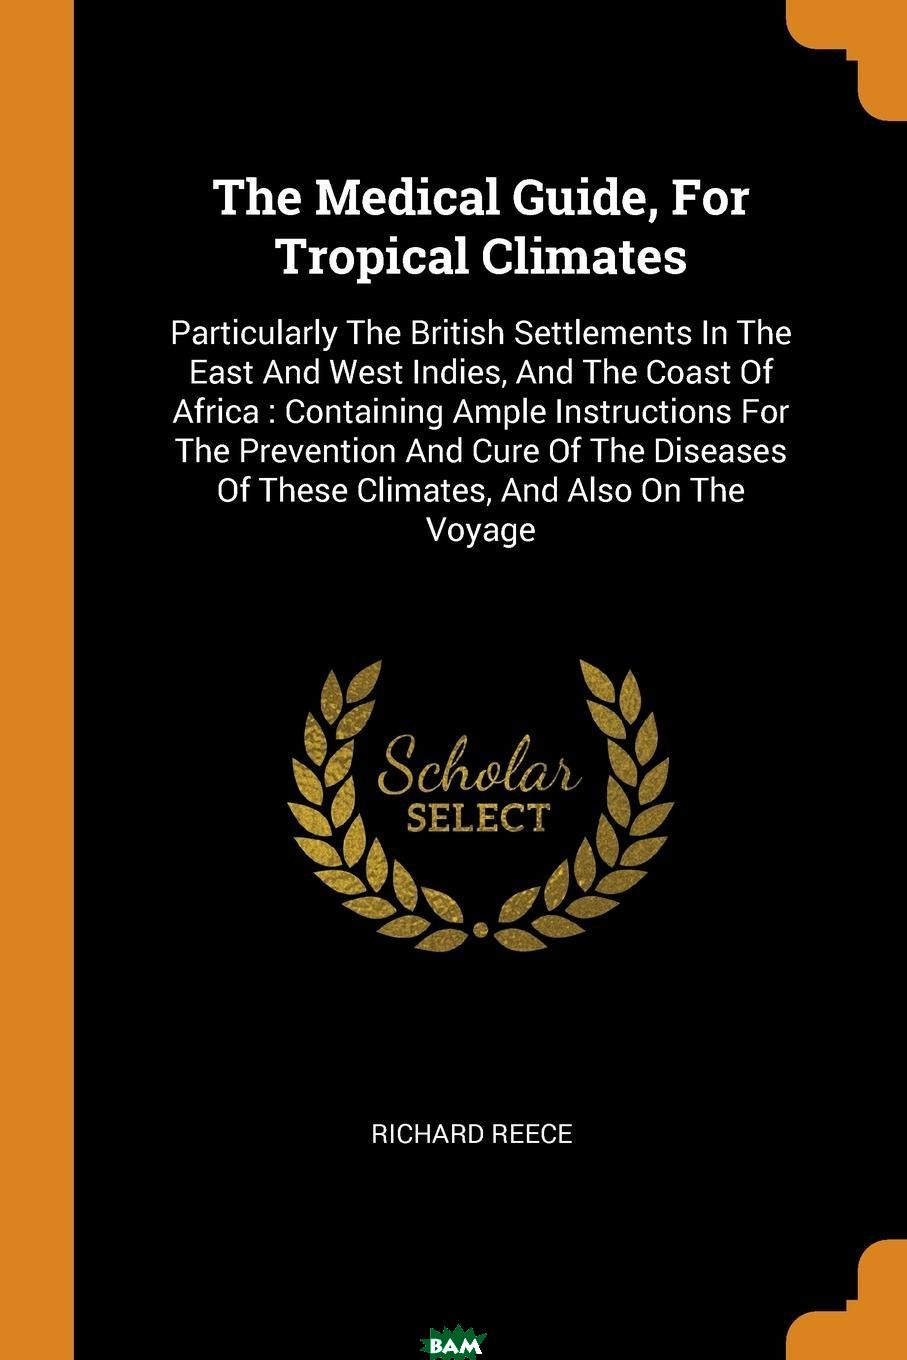 Купить The Medical Guide, For Tropical Climates. Particularly The British Settlements In The East And West Indies, And The Coast Of Africa : Containing Ample Instructions For The Prevention And Cure Of The, Richard Reece, 9780353418967